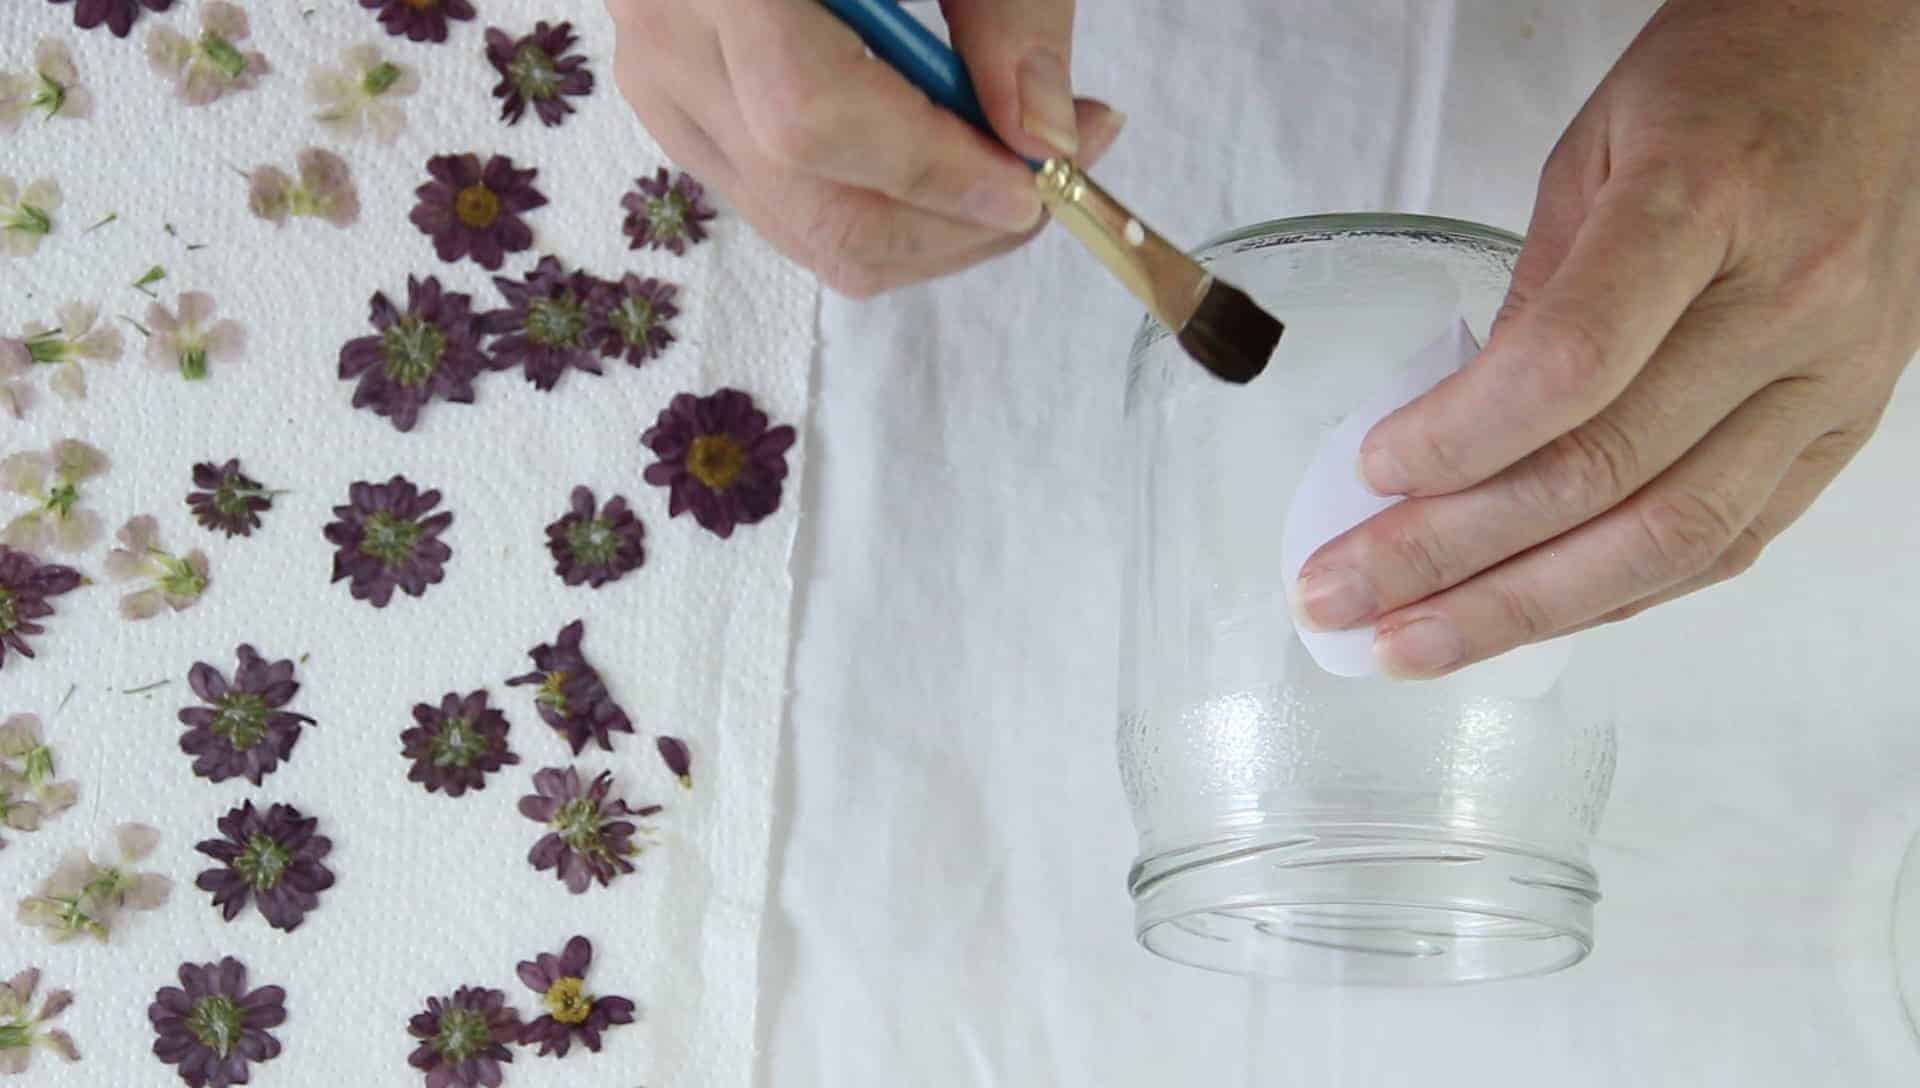 A person's hands using a paintbrush to add glue to a jar to make glass jar lanterns with pressed flowers.